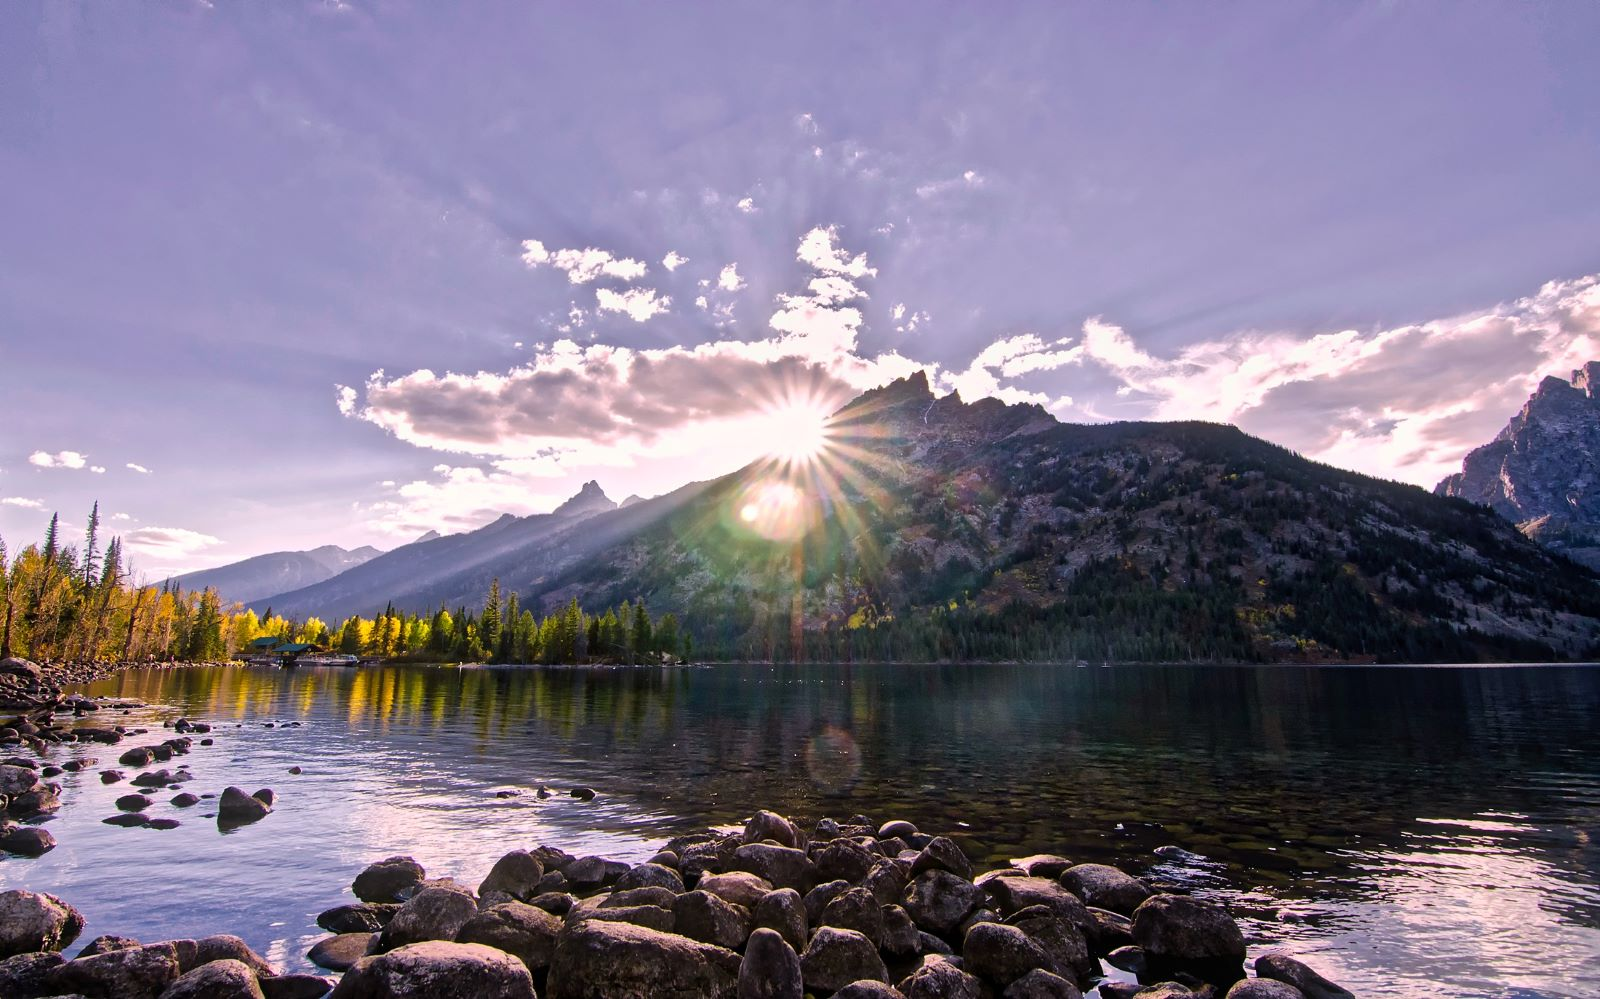 Places To Retire in Wyoming-Sun peaking over the mountains, over a clear lake with pine trees along the shore with blue skies